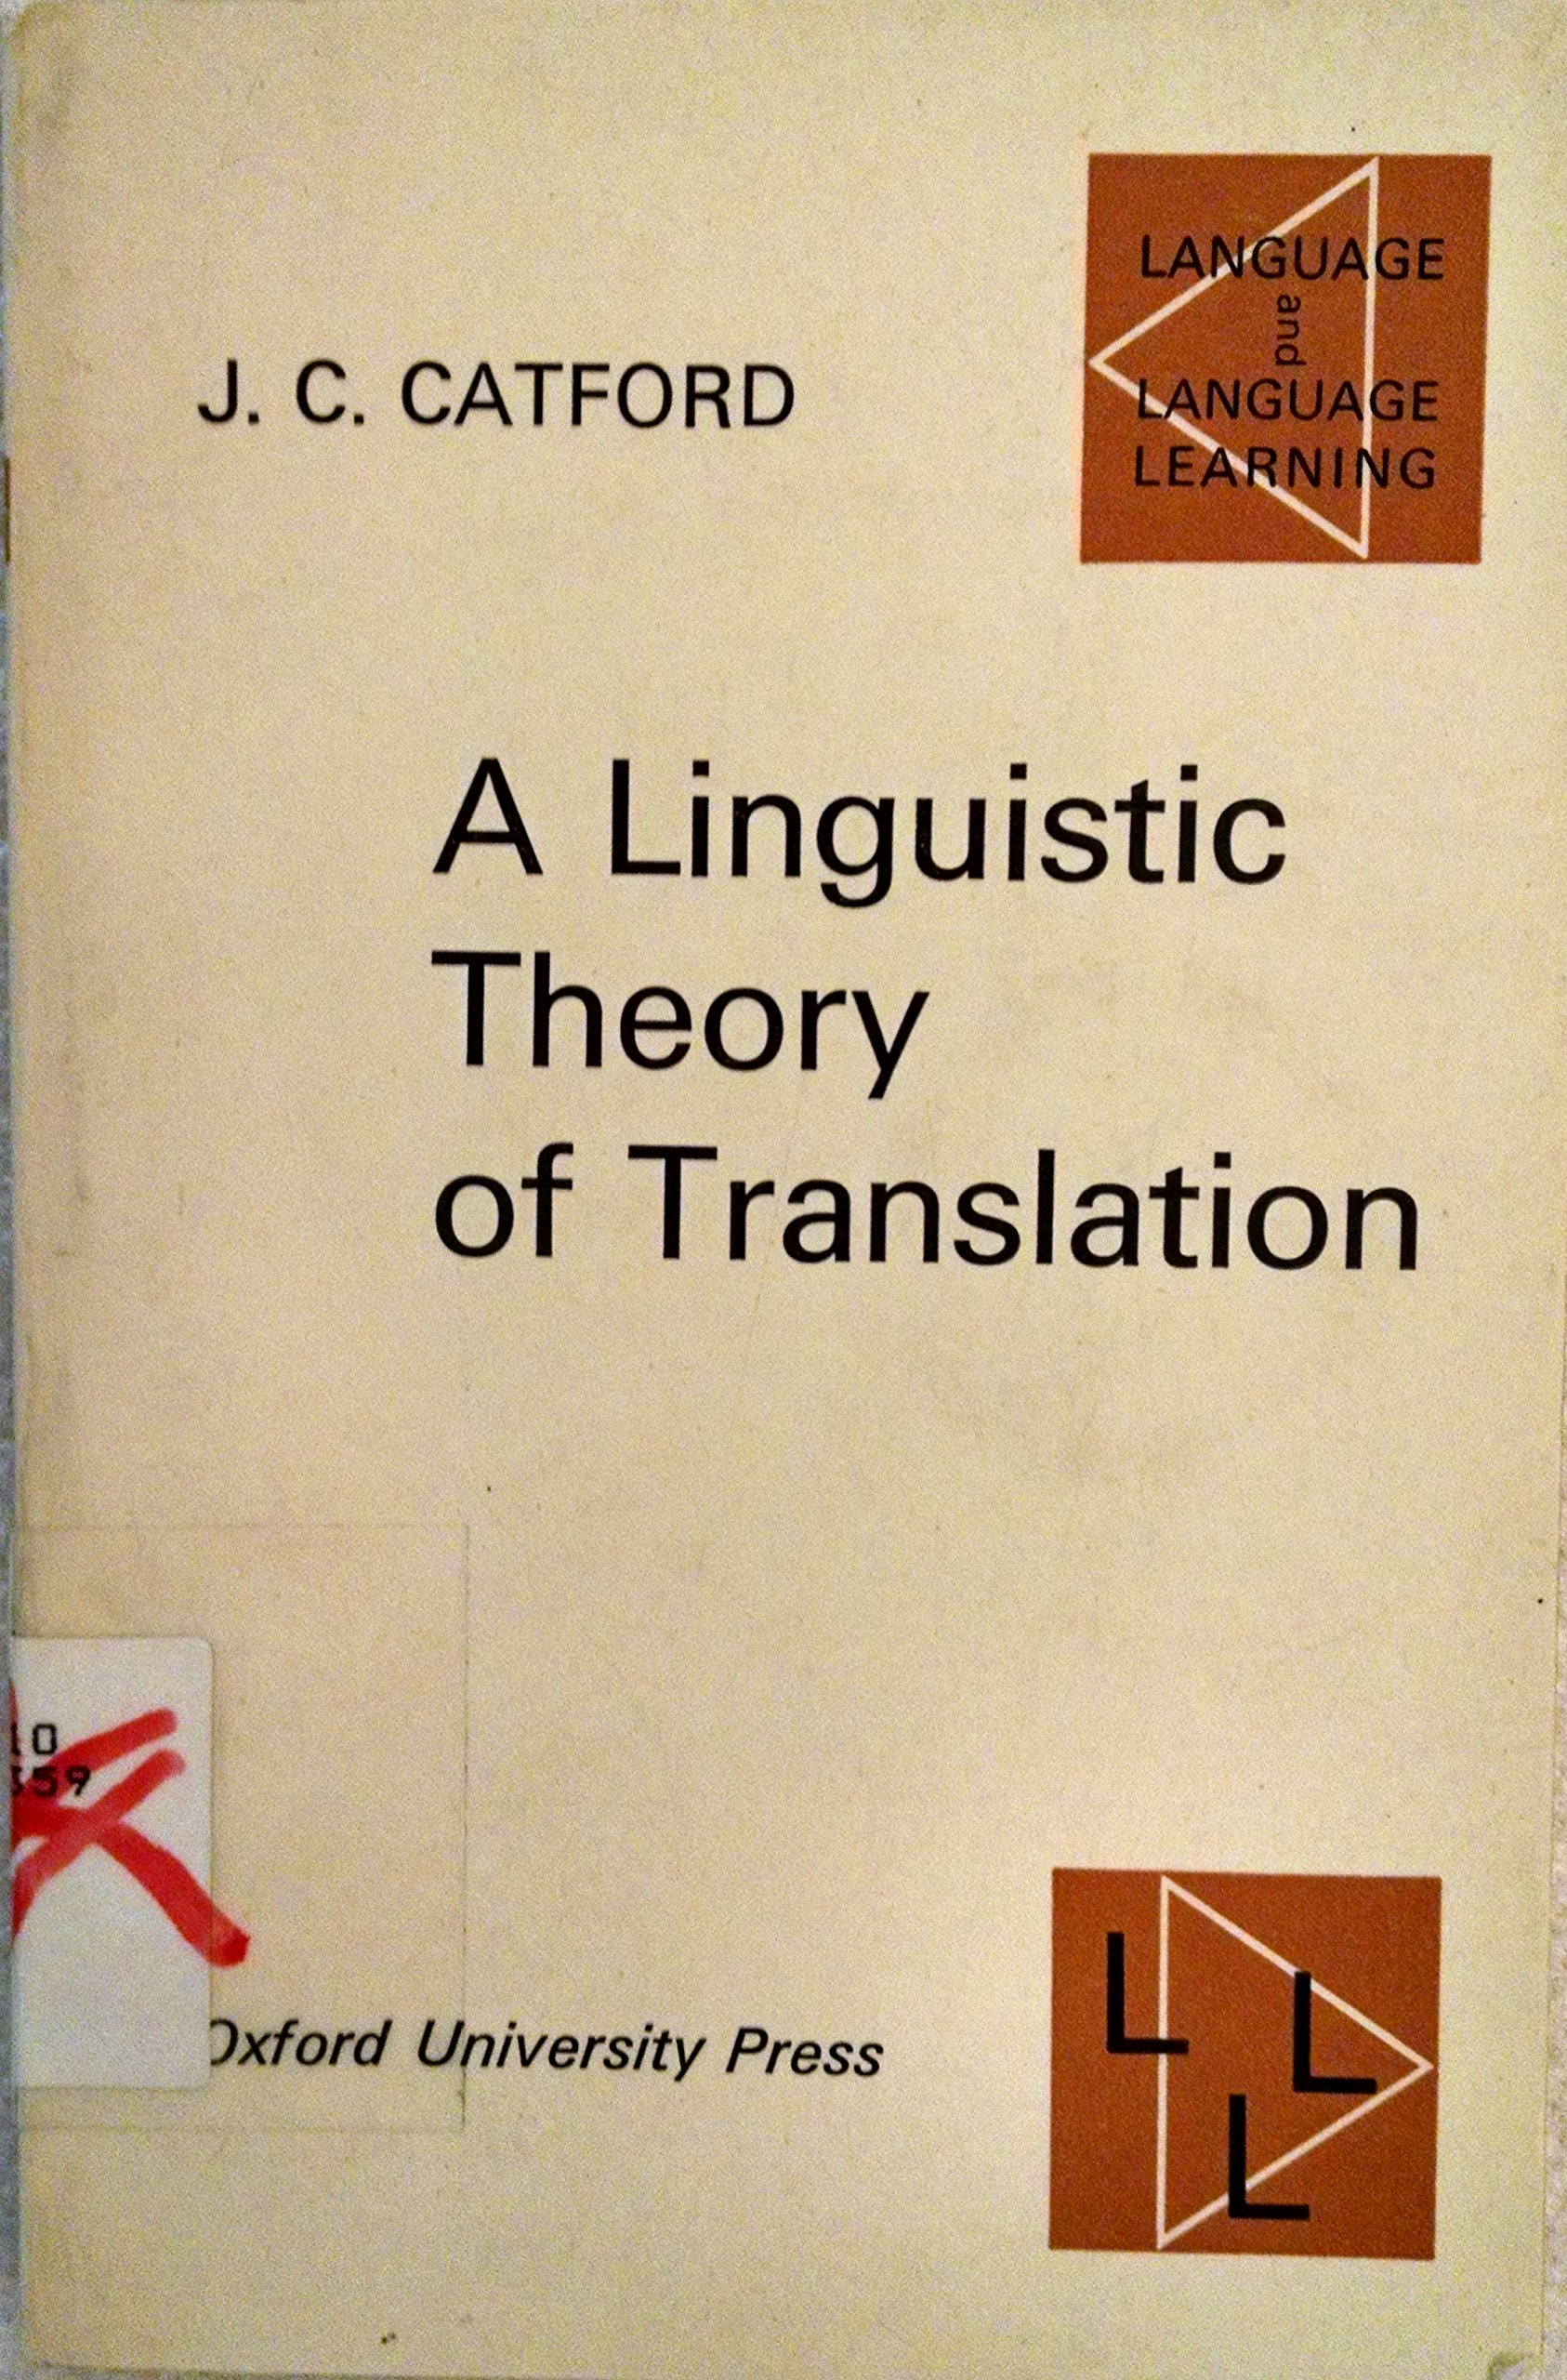 a linguistic theory of translation an essay in applied a linguistic theory of translation an essay in applied linguistics catford j c 9780194370189 amazon com books